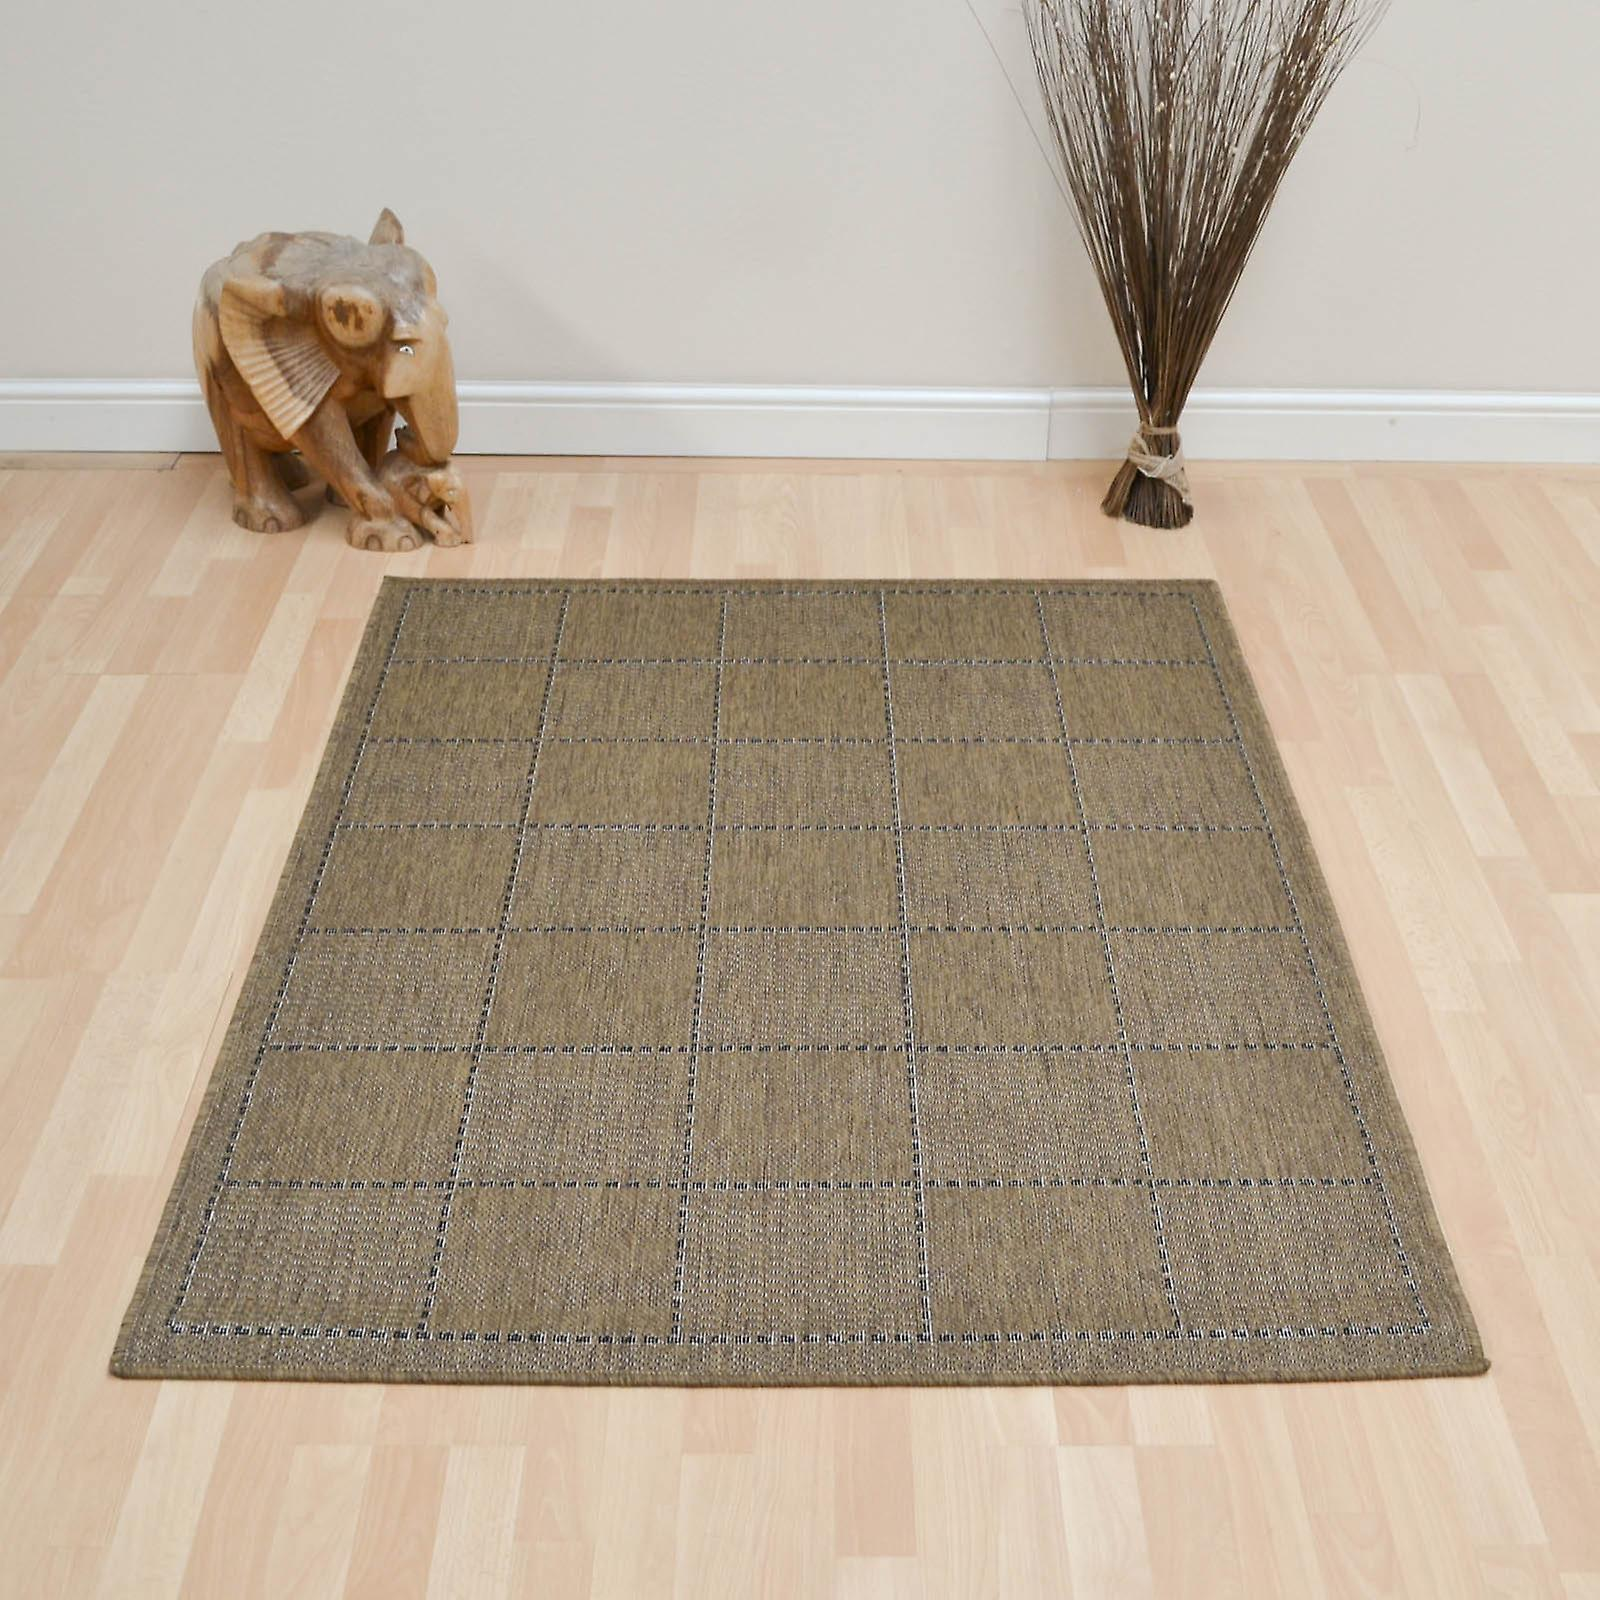 Super Sisalo Anti Slip Kitchen Rugs In Brown